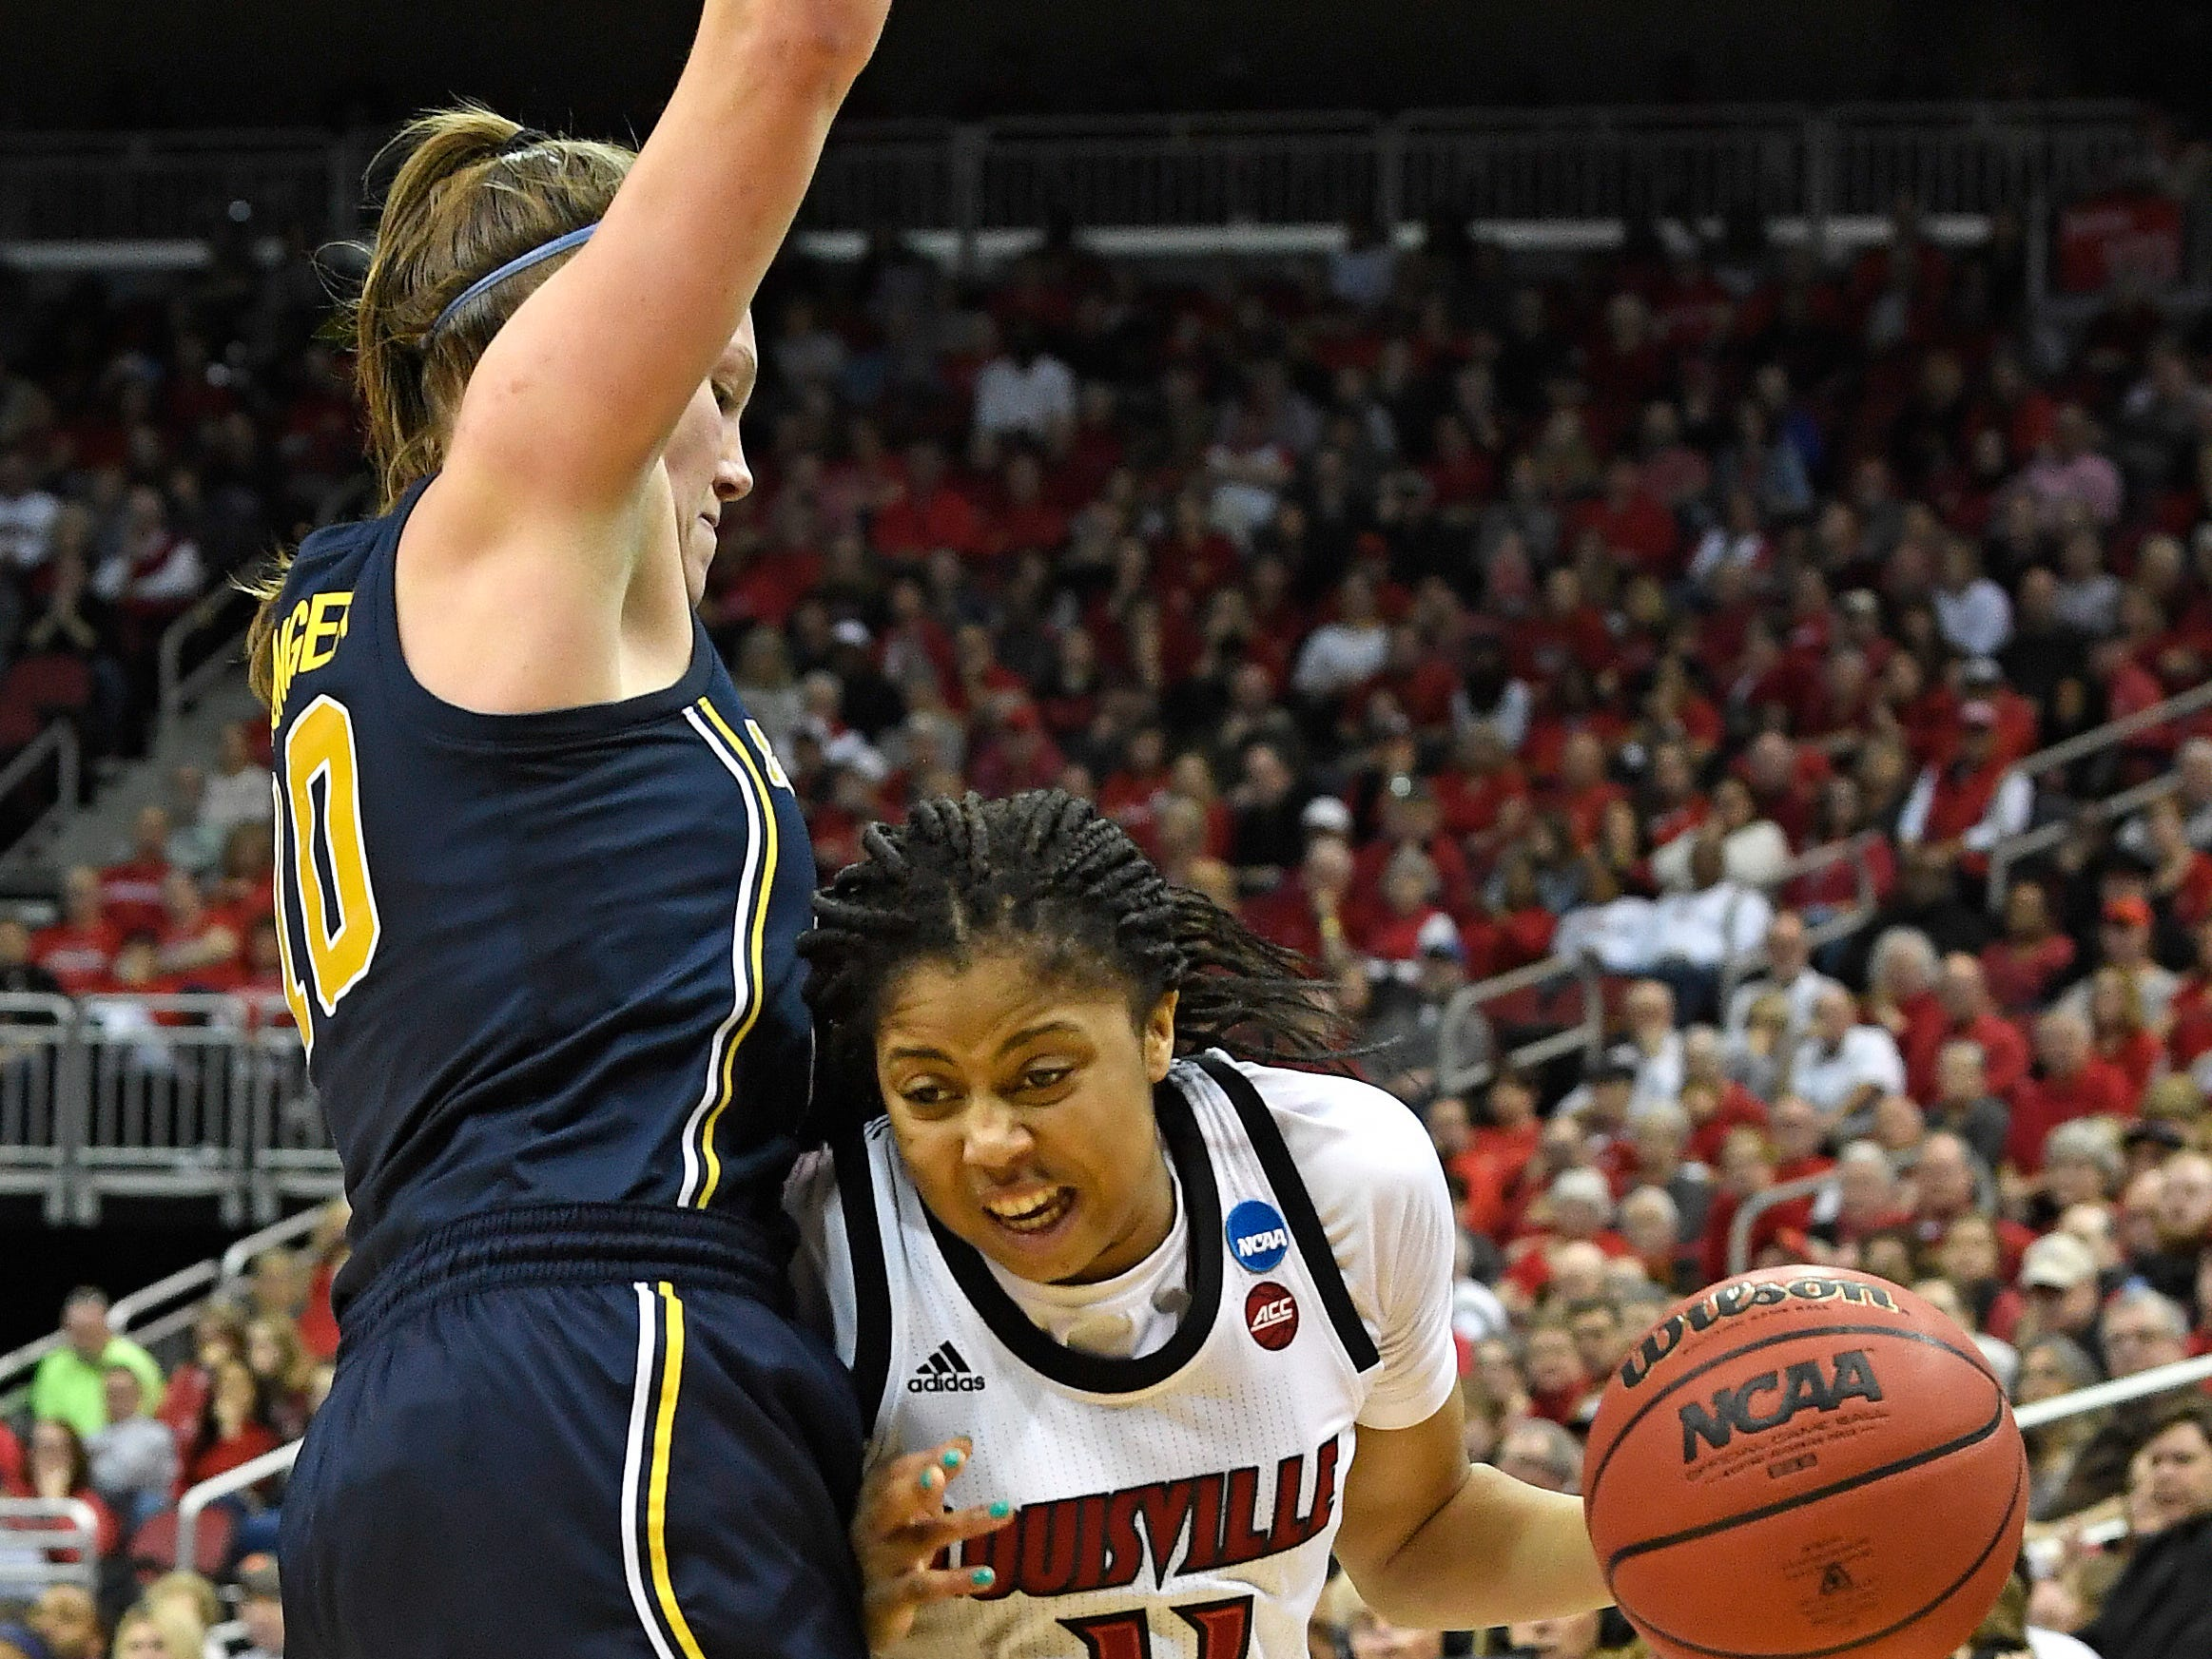 Louisville guard Arica Carter attempts to get around the defense of Michigan guard Nicole Munger.